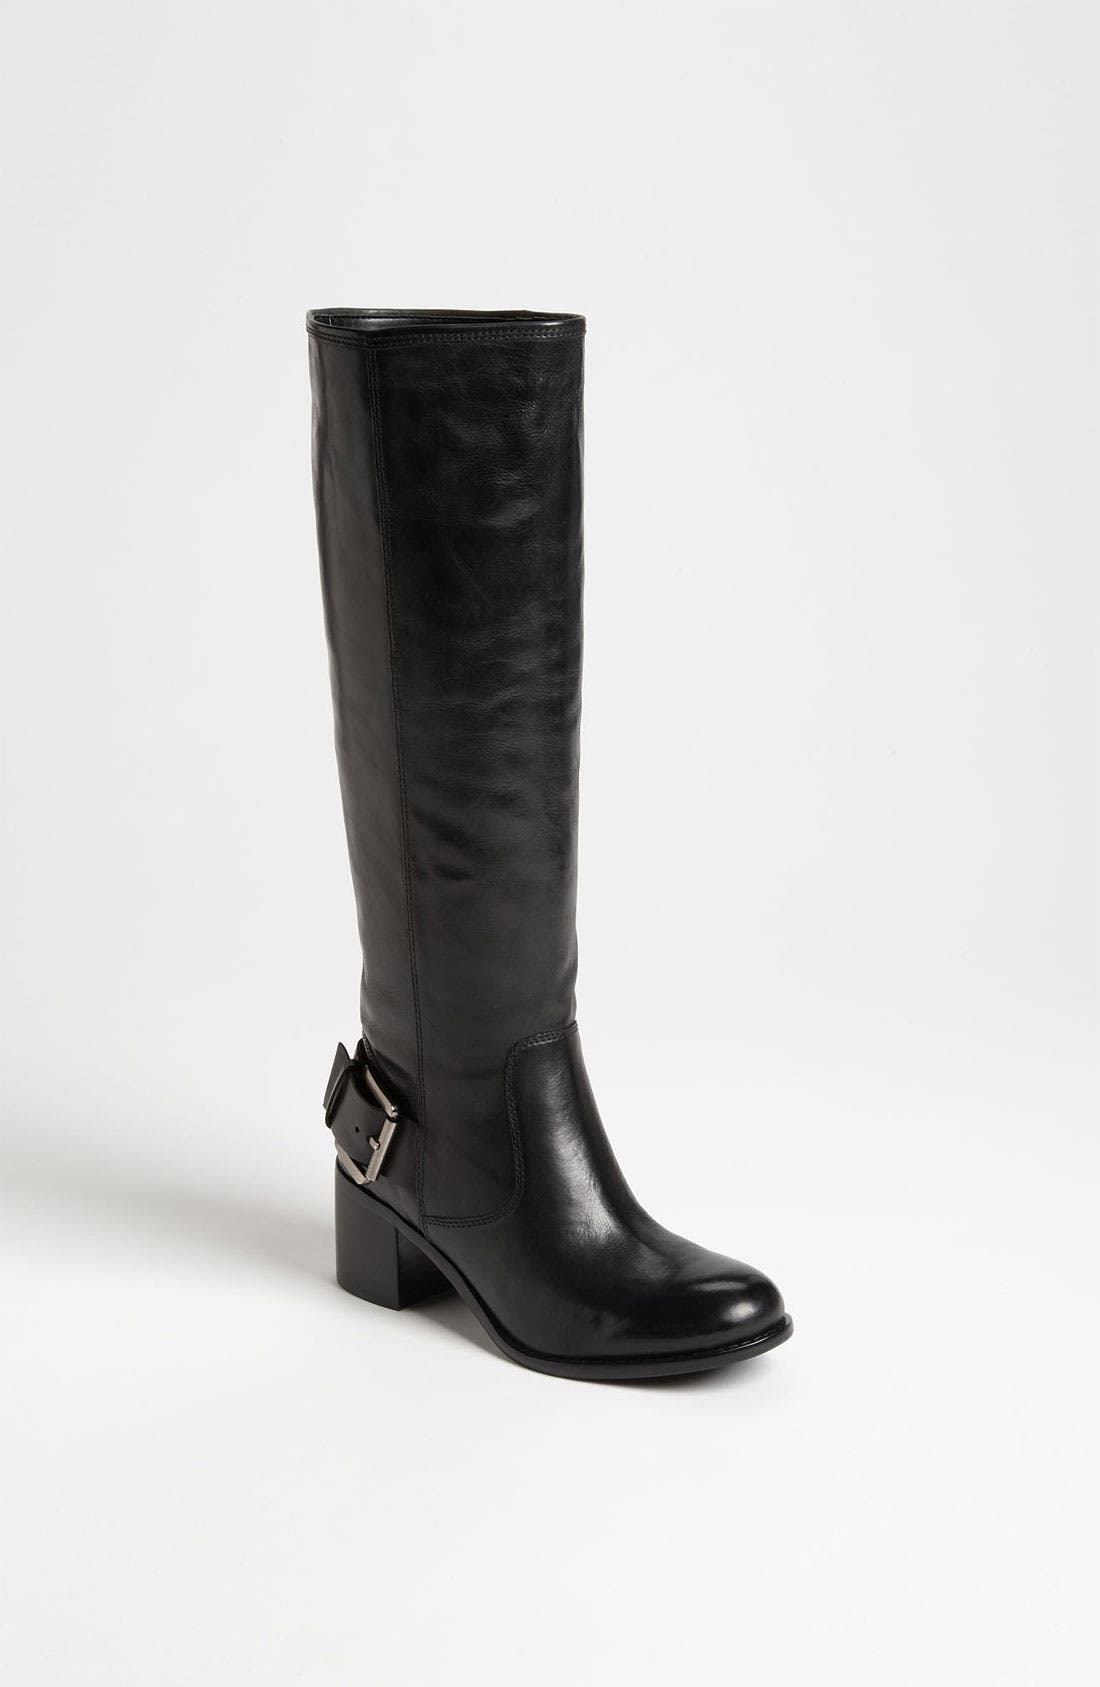 Alternate Image 1 Selected - Boutique 9 'Biondello' Boot